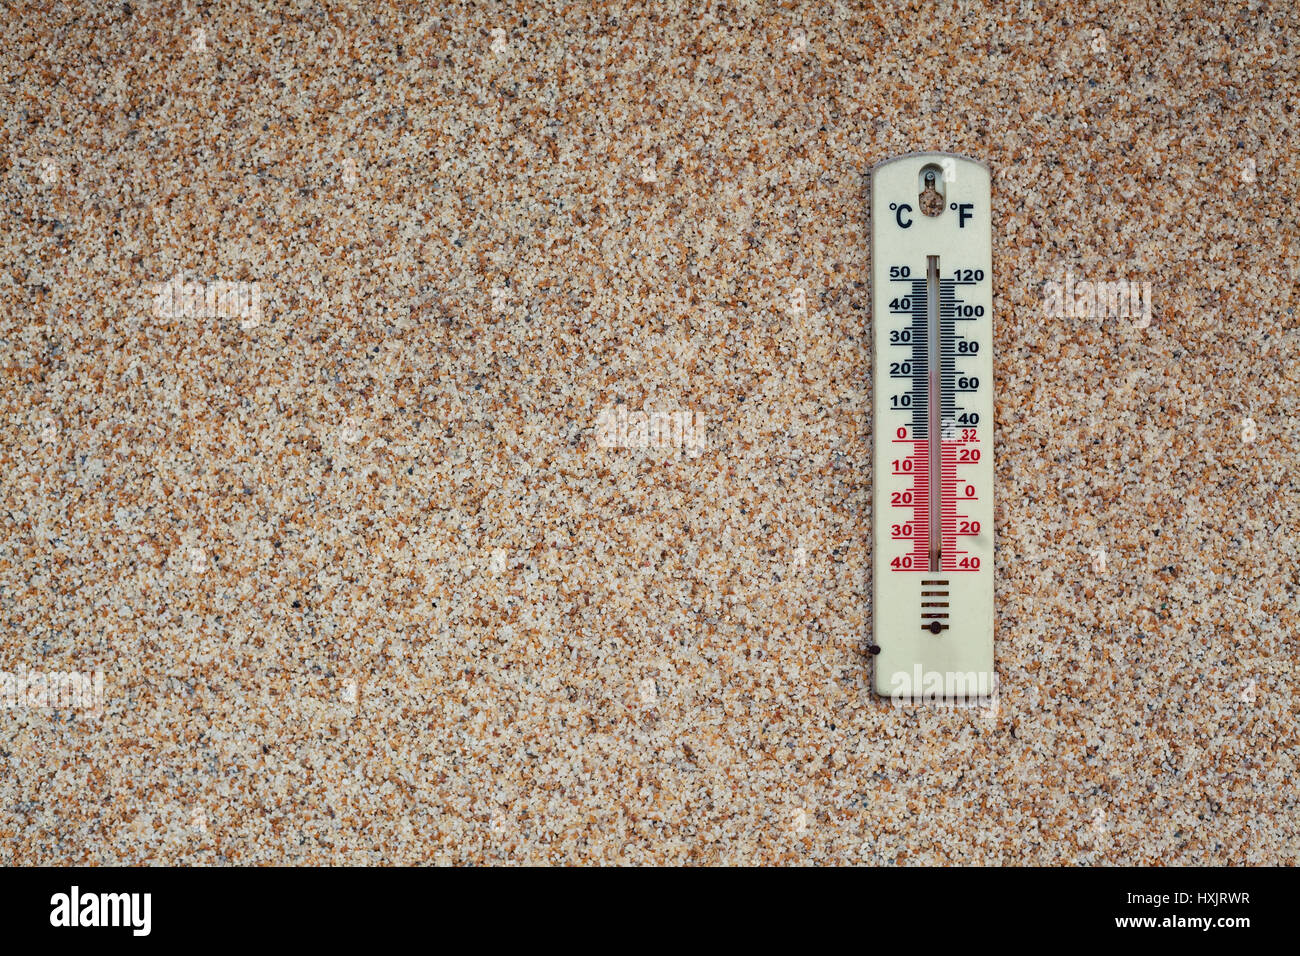 Details Of A Thermometer On Brown Wall Showing Temperature In Stock Photo Alamy Instrument for measuring temperature temperature, measure of the relative warmth or coolness of an object. alamy